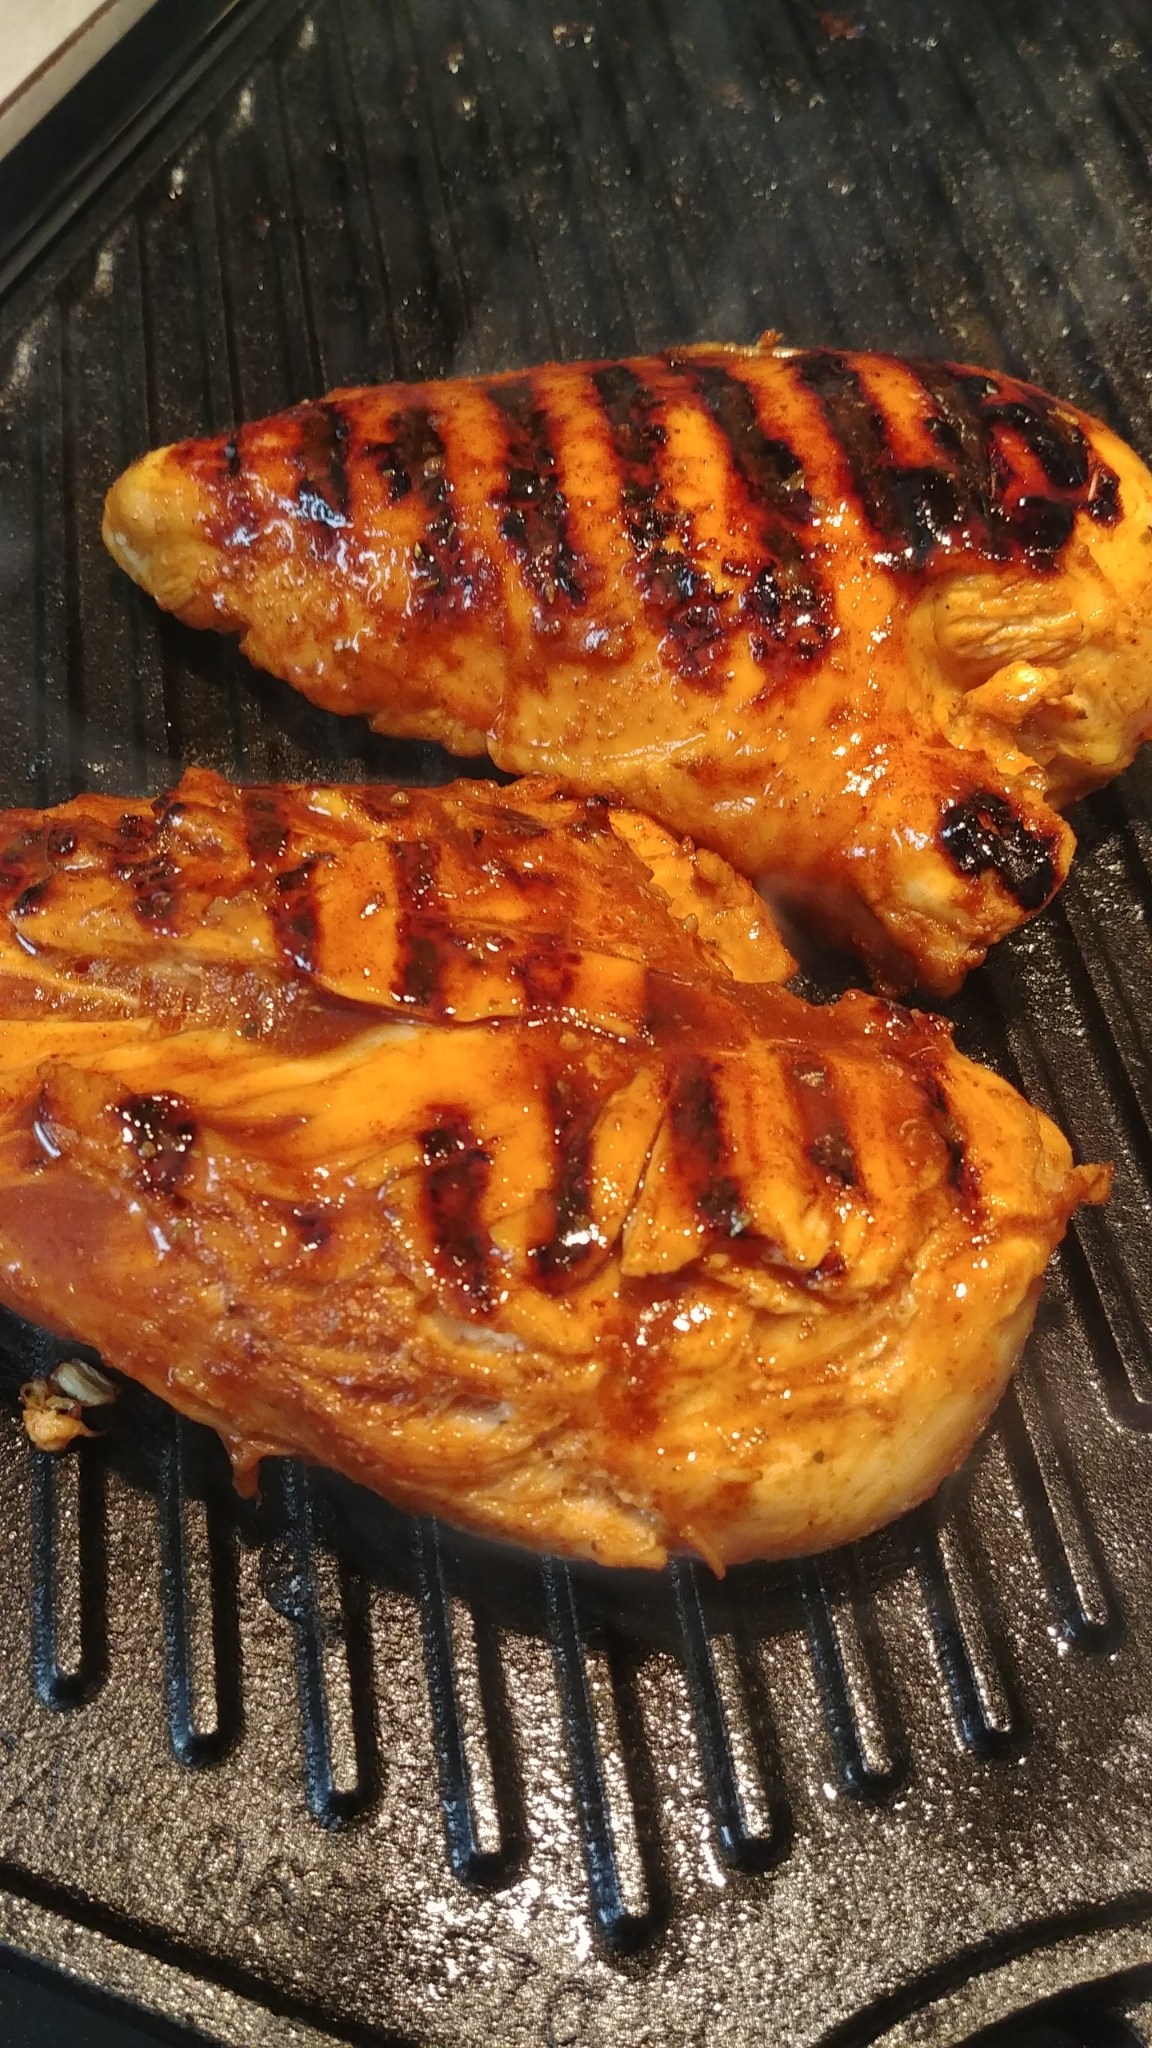 Grilled Maple-Chipotle Chicken Amelia